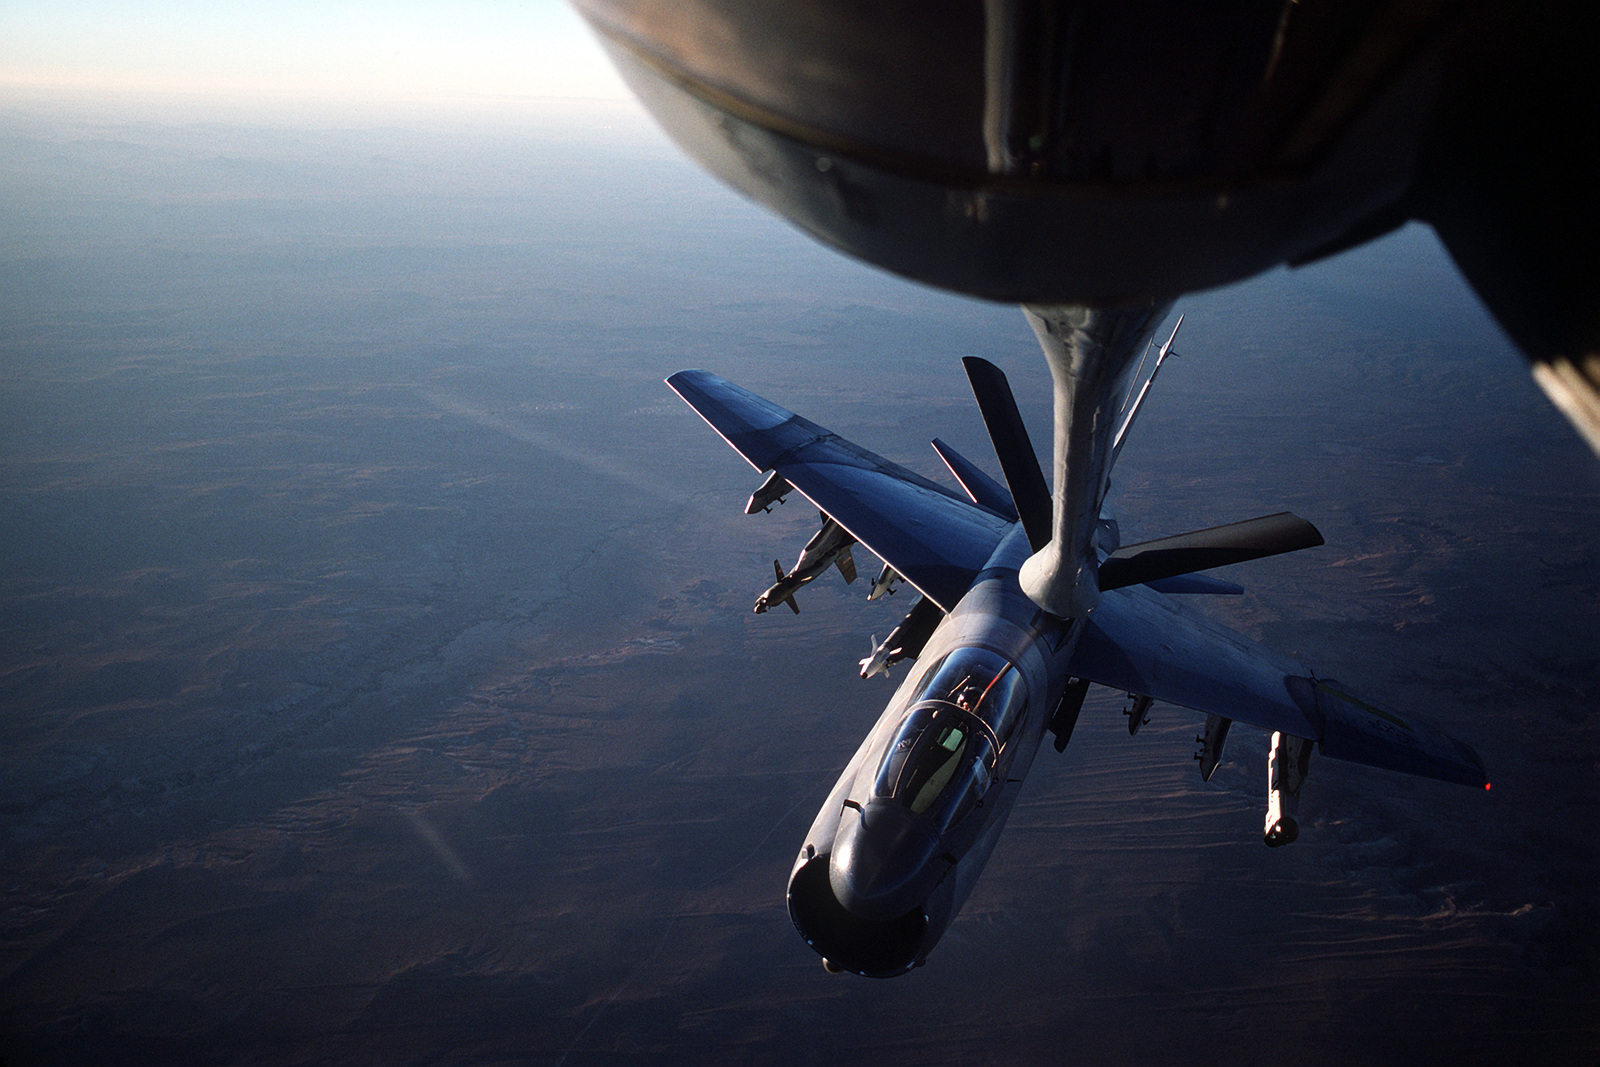 An Ohio Air National Guard A-7D Corsair II aircraft is refueled by a KC-135 Stratotanker aircraft during exercise Quick Force. The U.S. Central Command exercise is designed to increase combat capabilities and provide a realistic combat environment simulating areas such as Southwest Asia, the Middle East and the Horn of Africa. The refueling mission is taking place at the Utah Test and Training Range